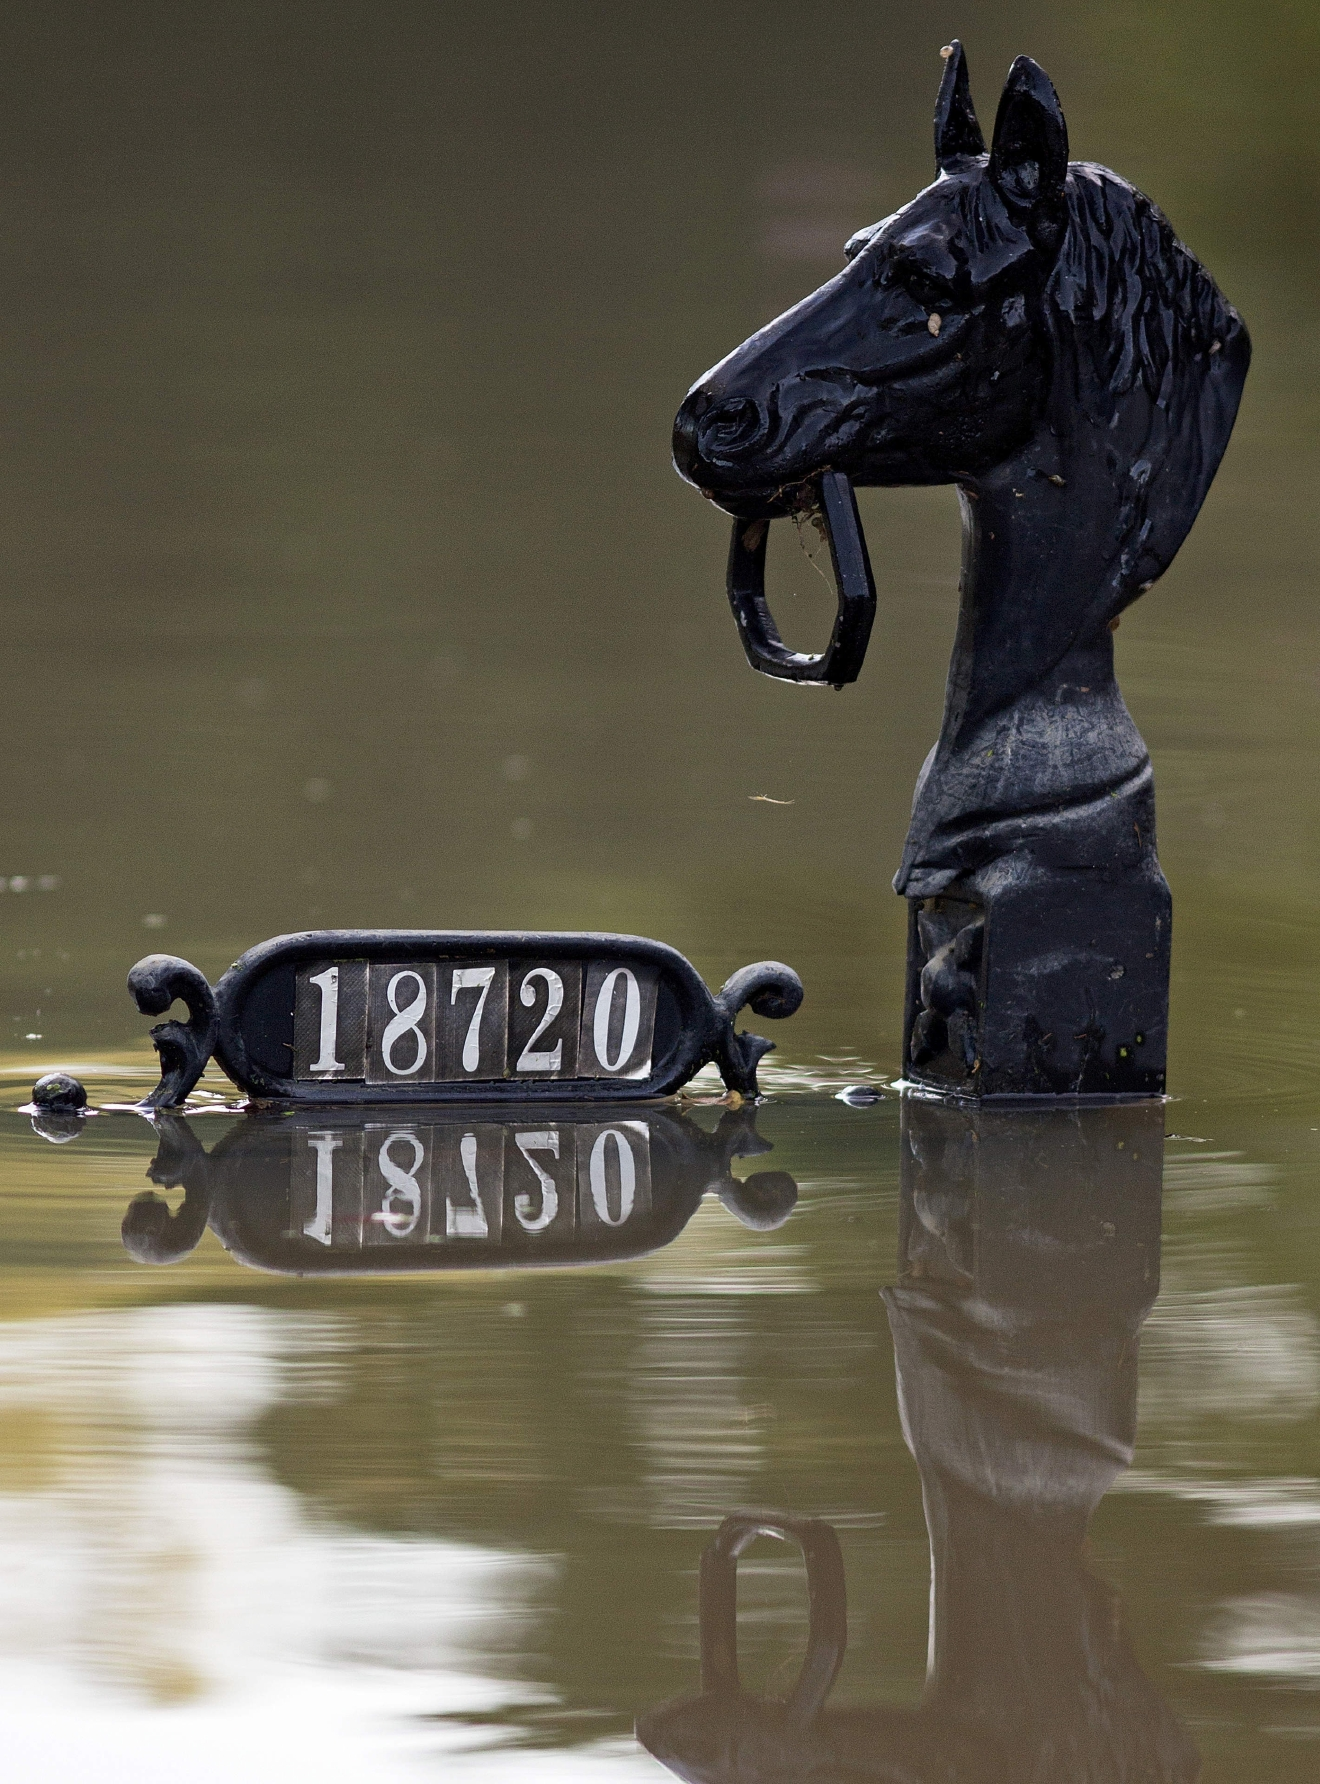 Mailboxes are seen just above flood water in Prairieville, La., Tuesday, Aug. 16, 2016.  As waters begin to recede in parts of Louisiana,  some residents struggled to return to flood-damaged homes on foot, in cars and by boat.  (AP Photo/Max Becherer)